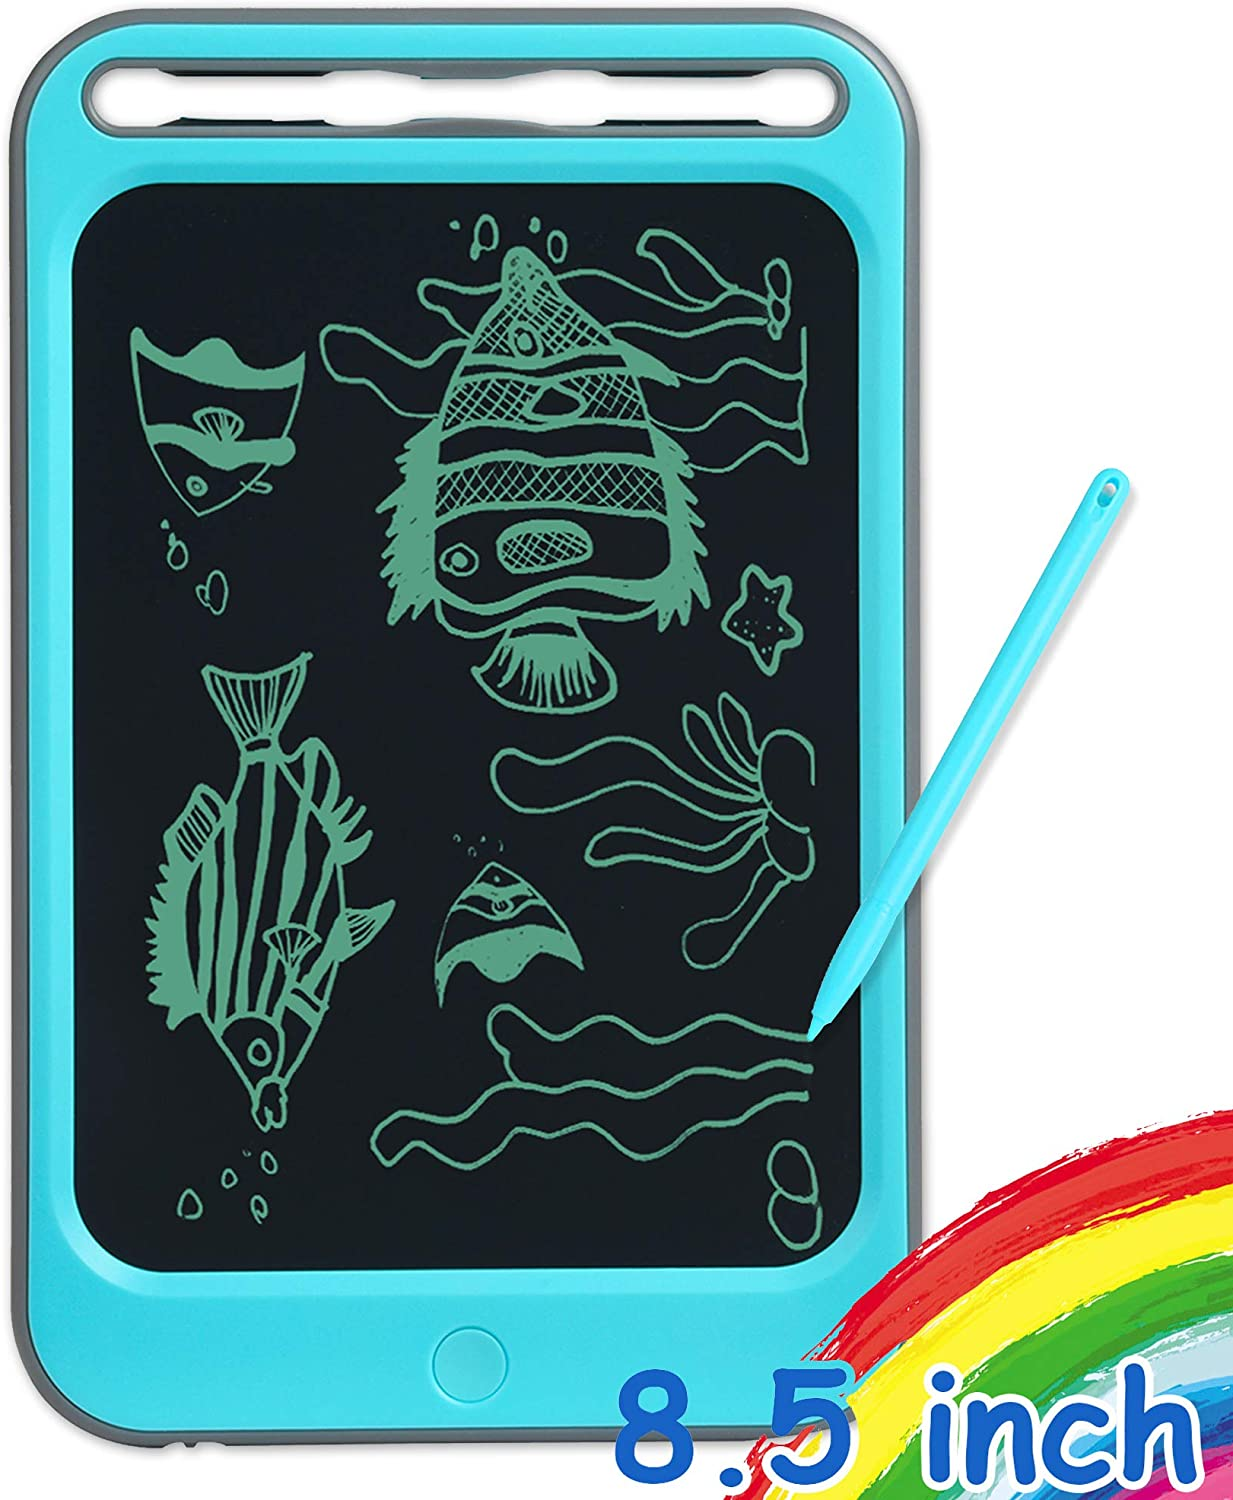 WINDEK LCD Writing Tablet 8.5 inch Writing Pad & LCD Pad, Electronic Writing & Drawing Doodle Board, Kids Drawing Tablet, Memo Board for Kids and Adults